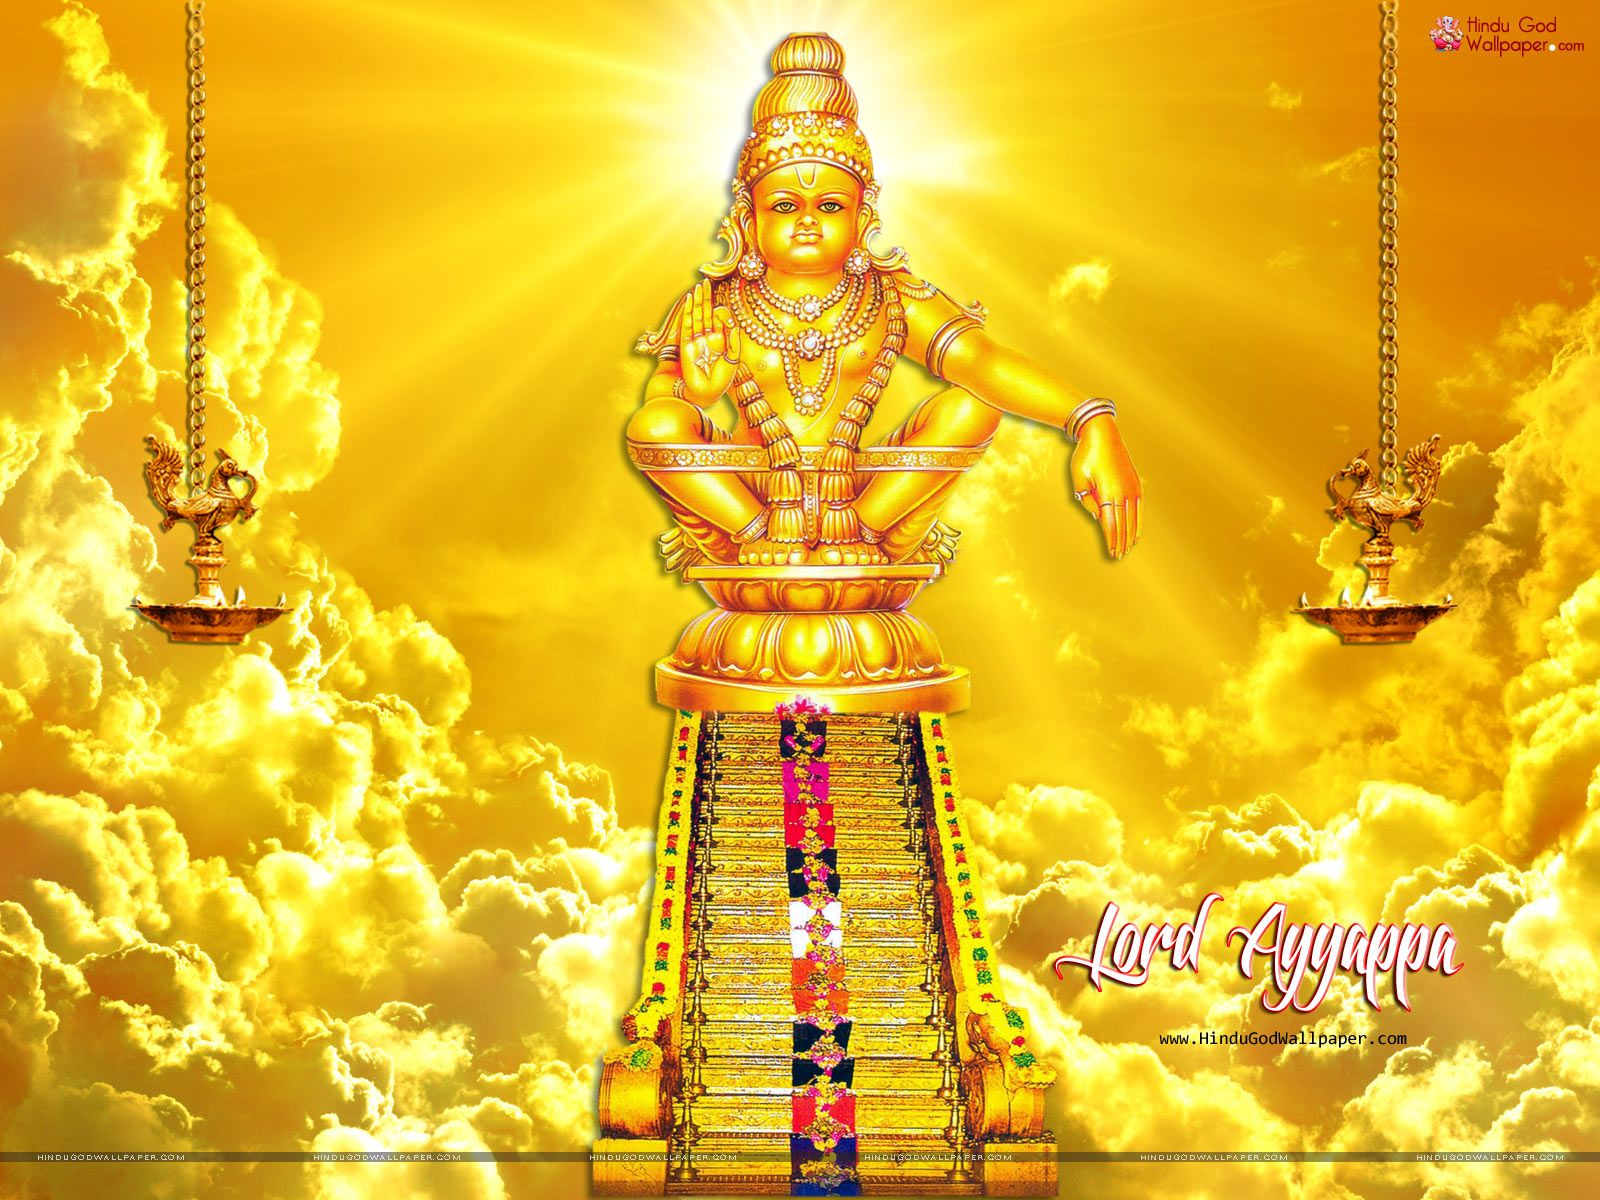 Swami Ayyappan Wallpapers Free Download